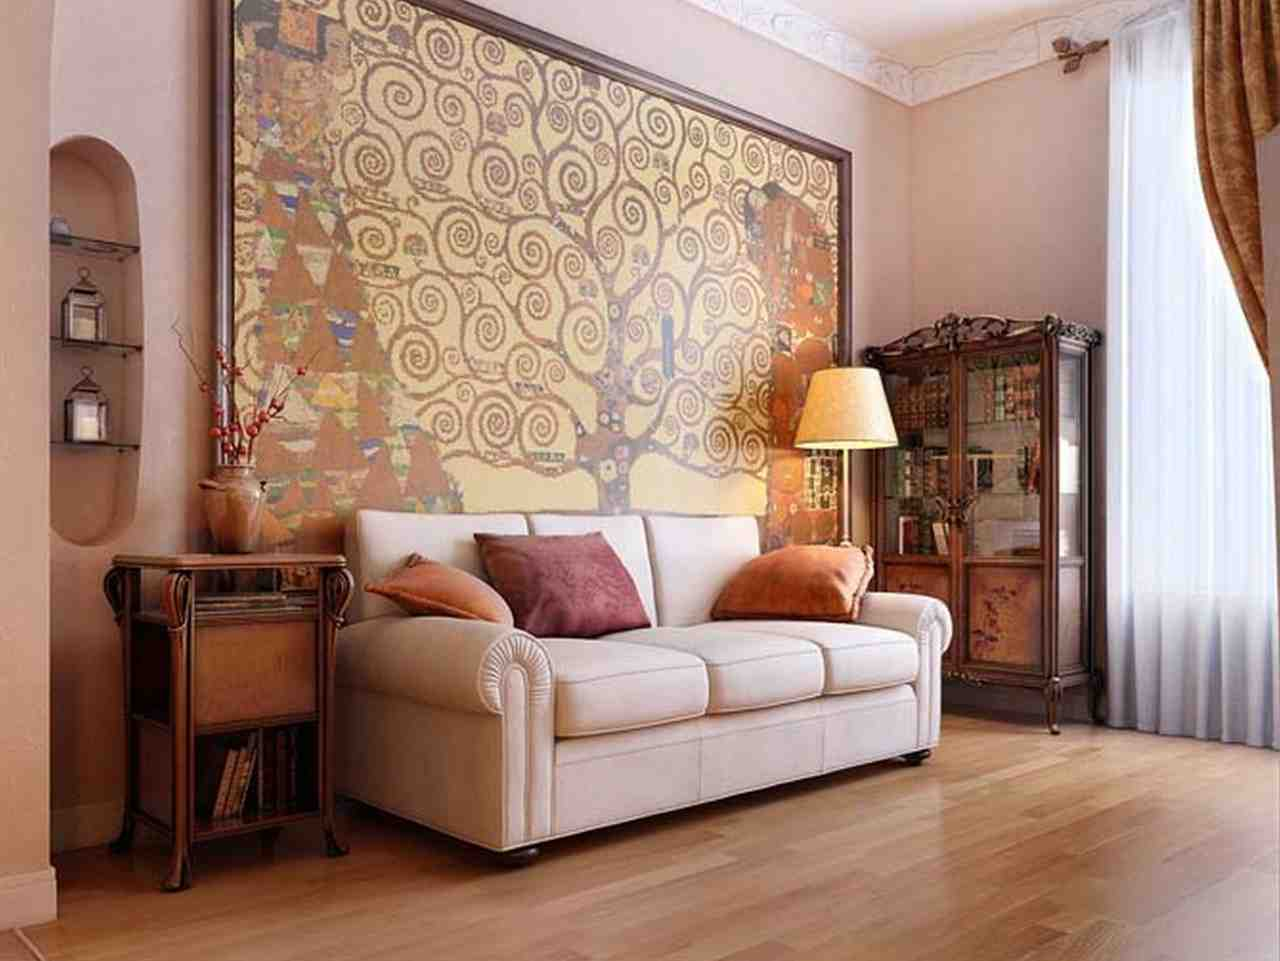 Large Wall Decor Ideas for Living Room - Decor Ideas on Decorative Wall Sconces For Living Room Ideas id=80305